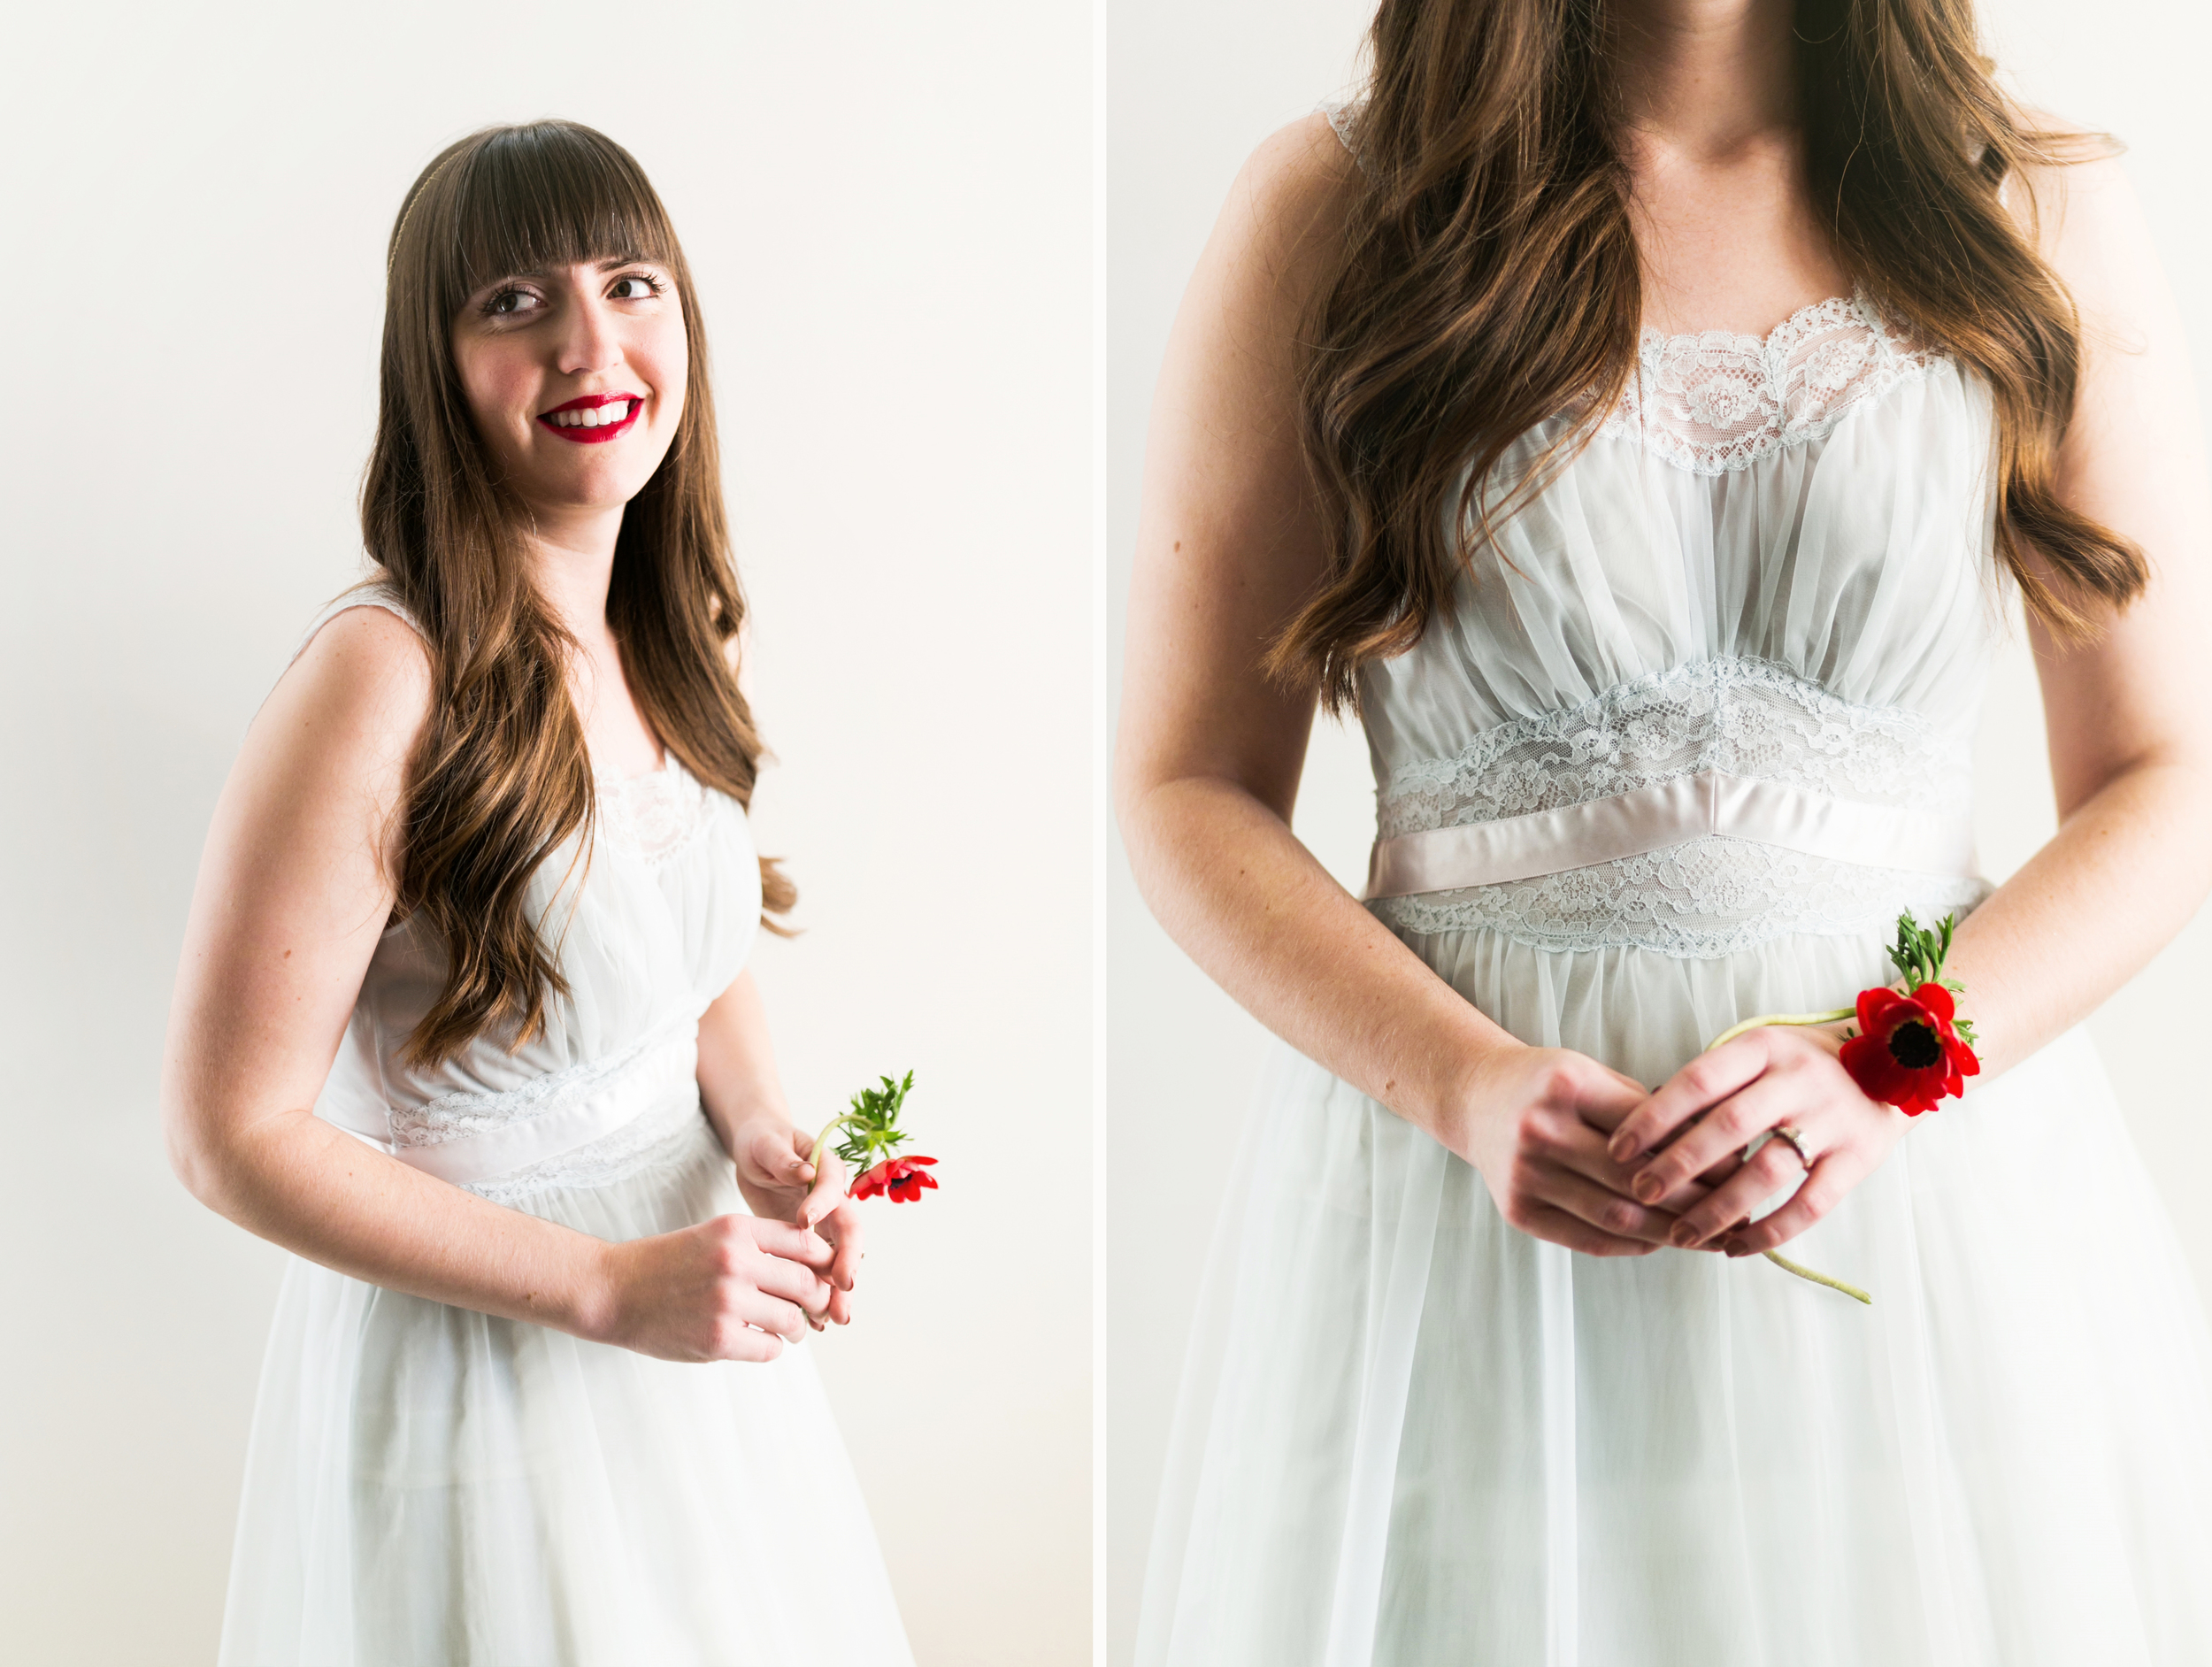 Valentines Bride and Her Bridesmaids  Styled Session  Hurtienne Photography  Portland Oregon Wedding Photographers (26)